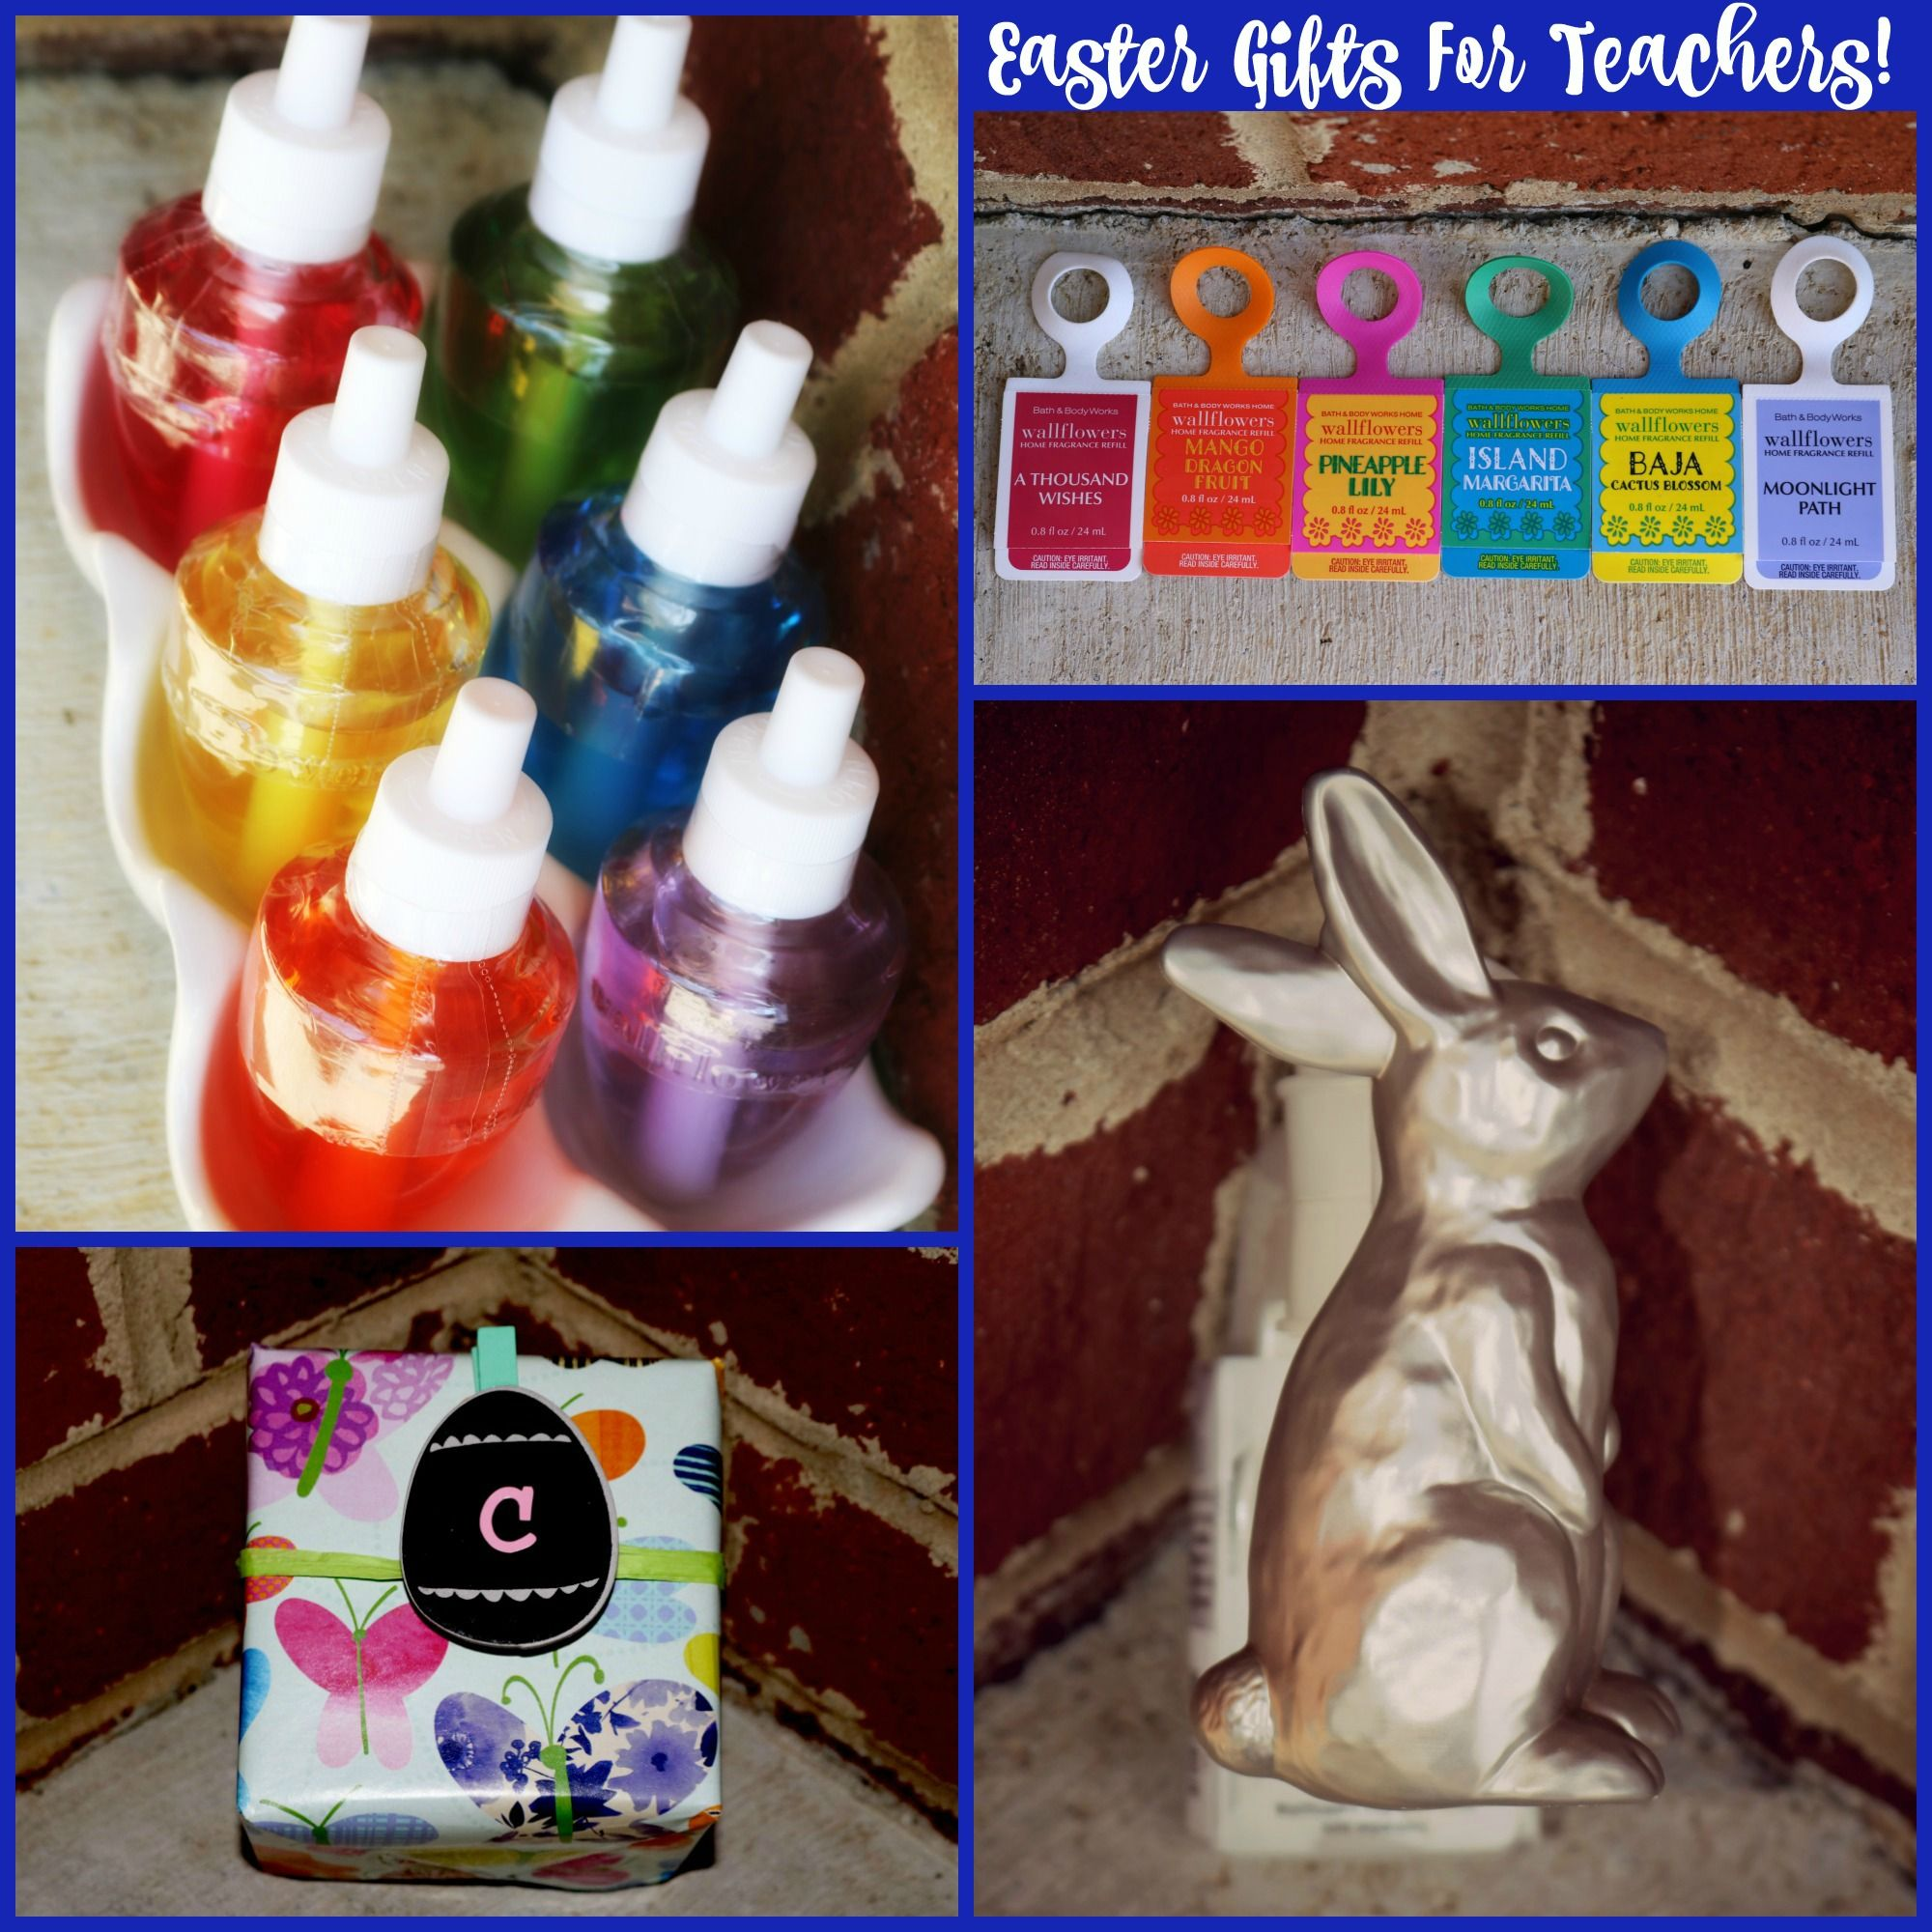 Happy easter easter gifts for teachers apples for teachers bath happy easter easter gifts for teachers apples for teachers bath body wallflower negle Gallery